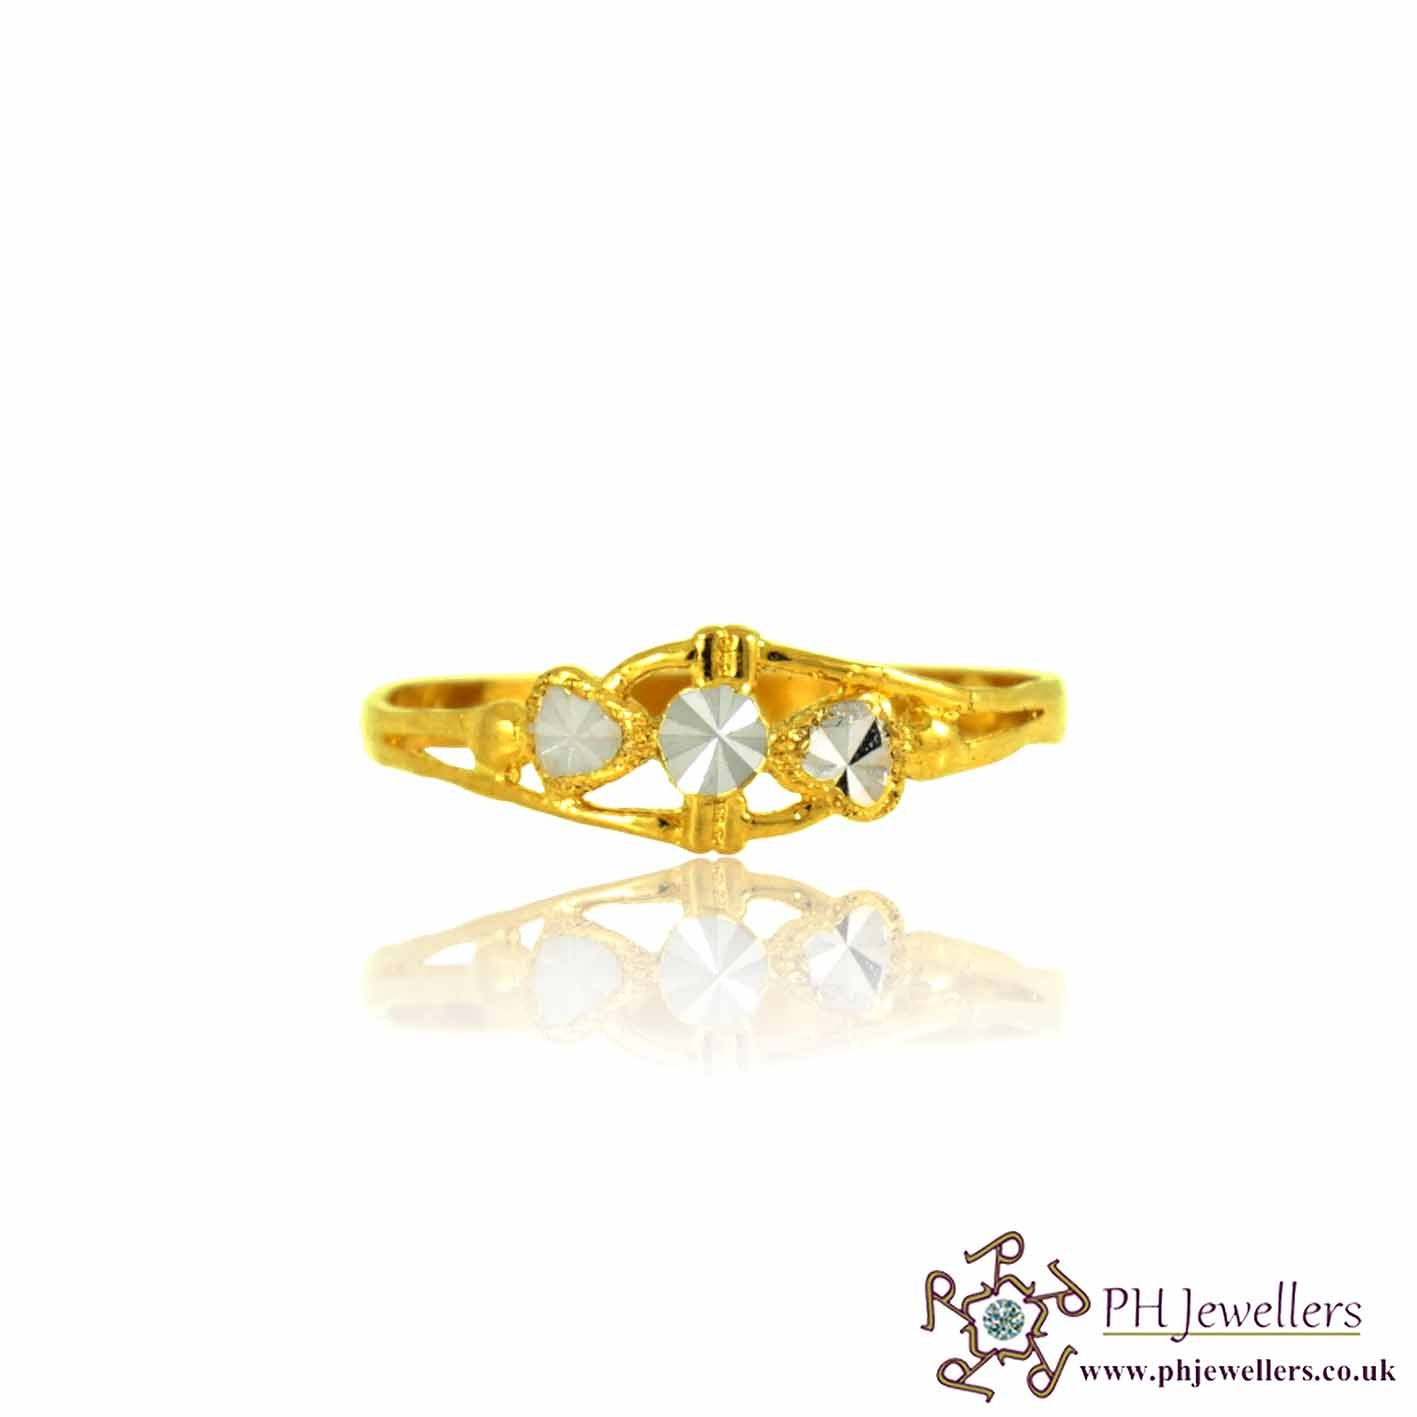 22ct 916 Hallmark Yellow Gold Size P 1/2, Q Rhodium Two Heart Ring PR31